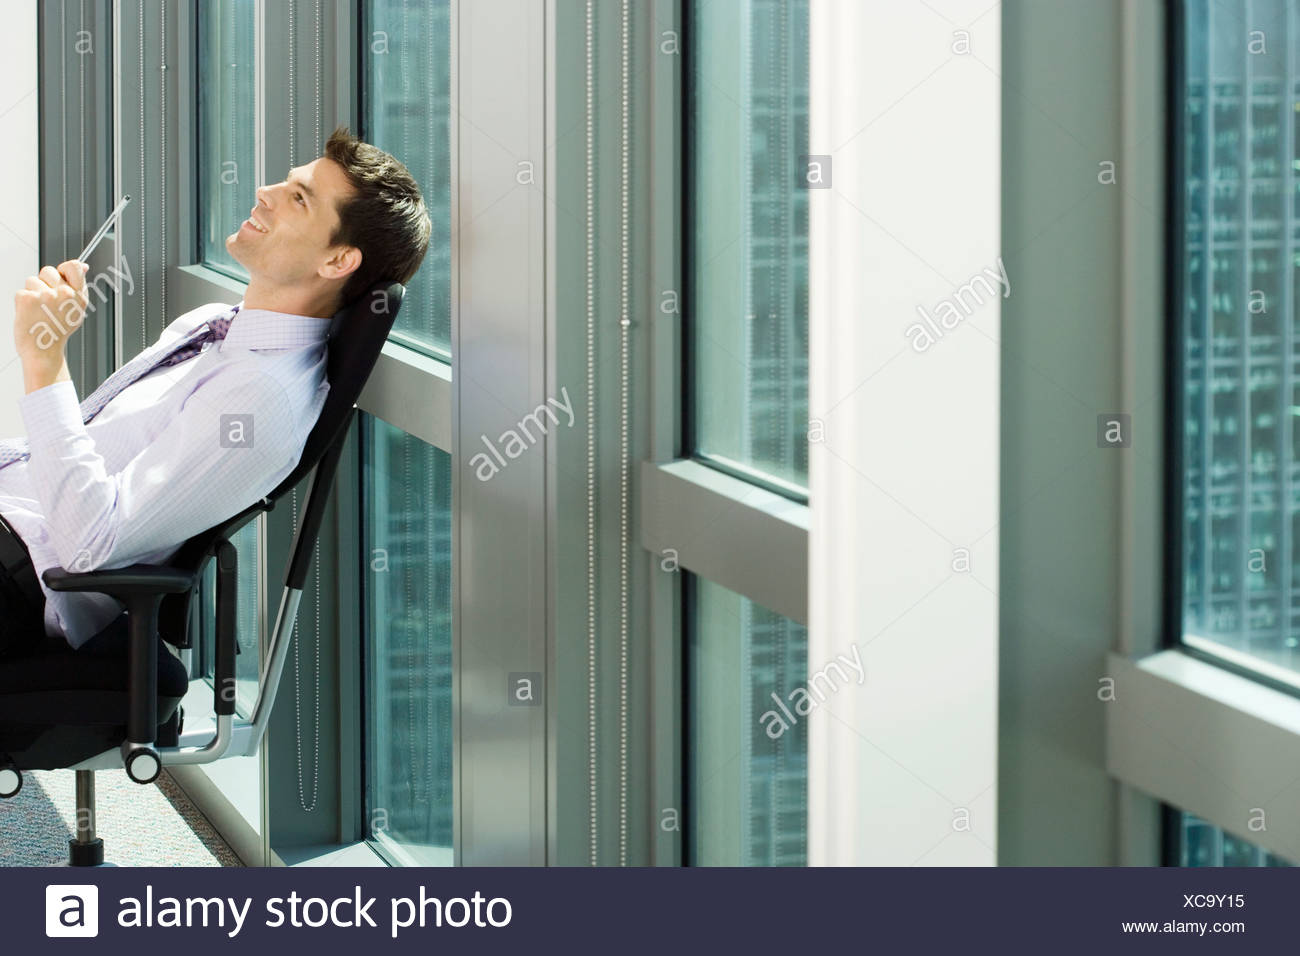 office chair leaning to one side how cane a back profile stock photos and images alamy